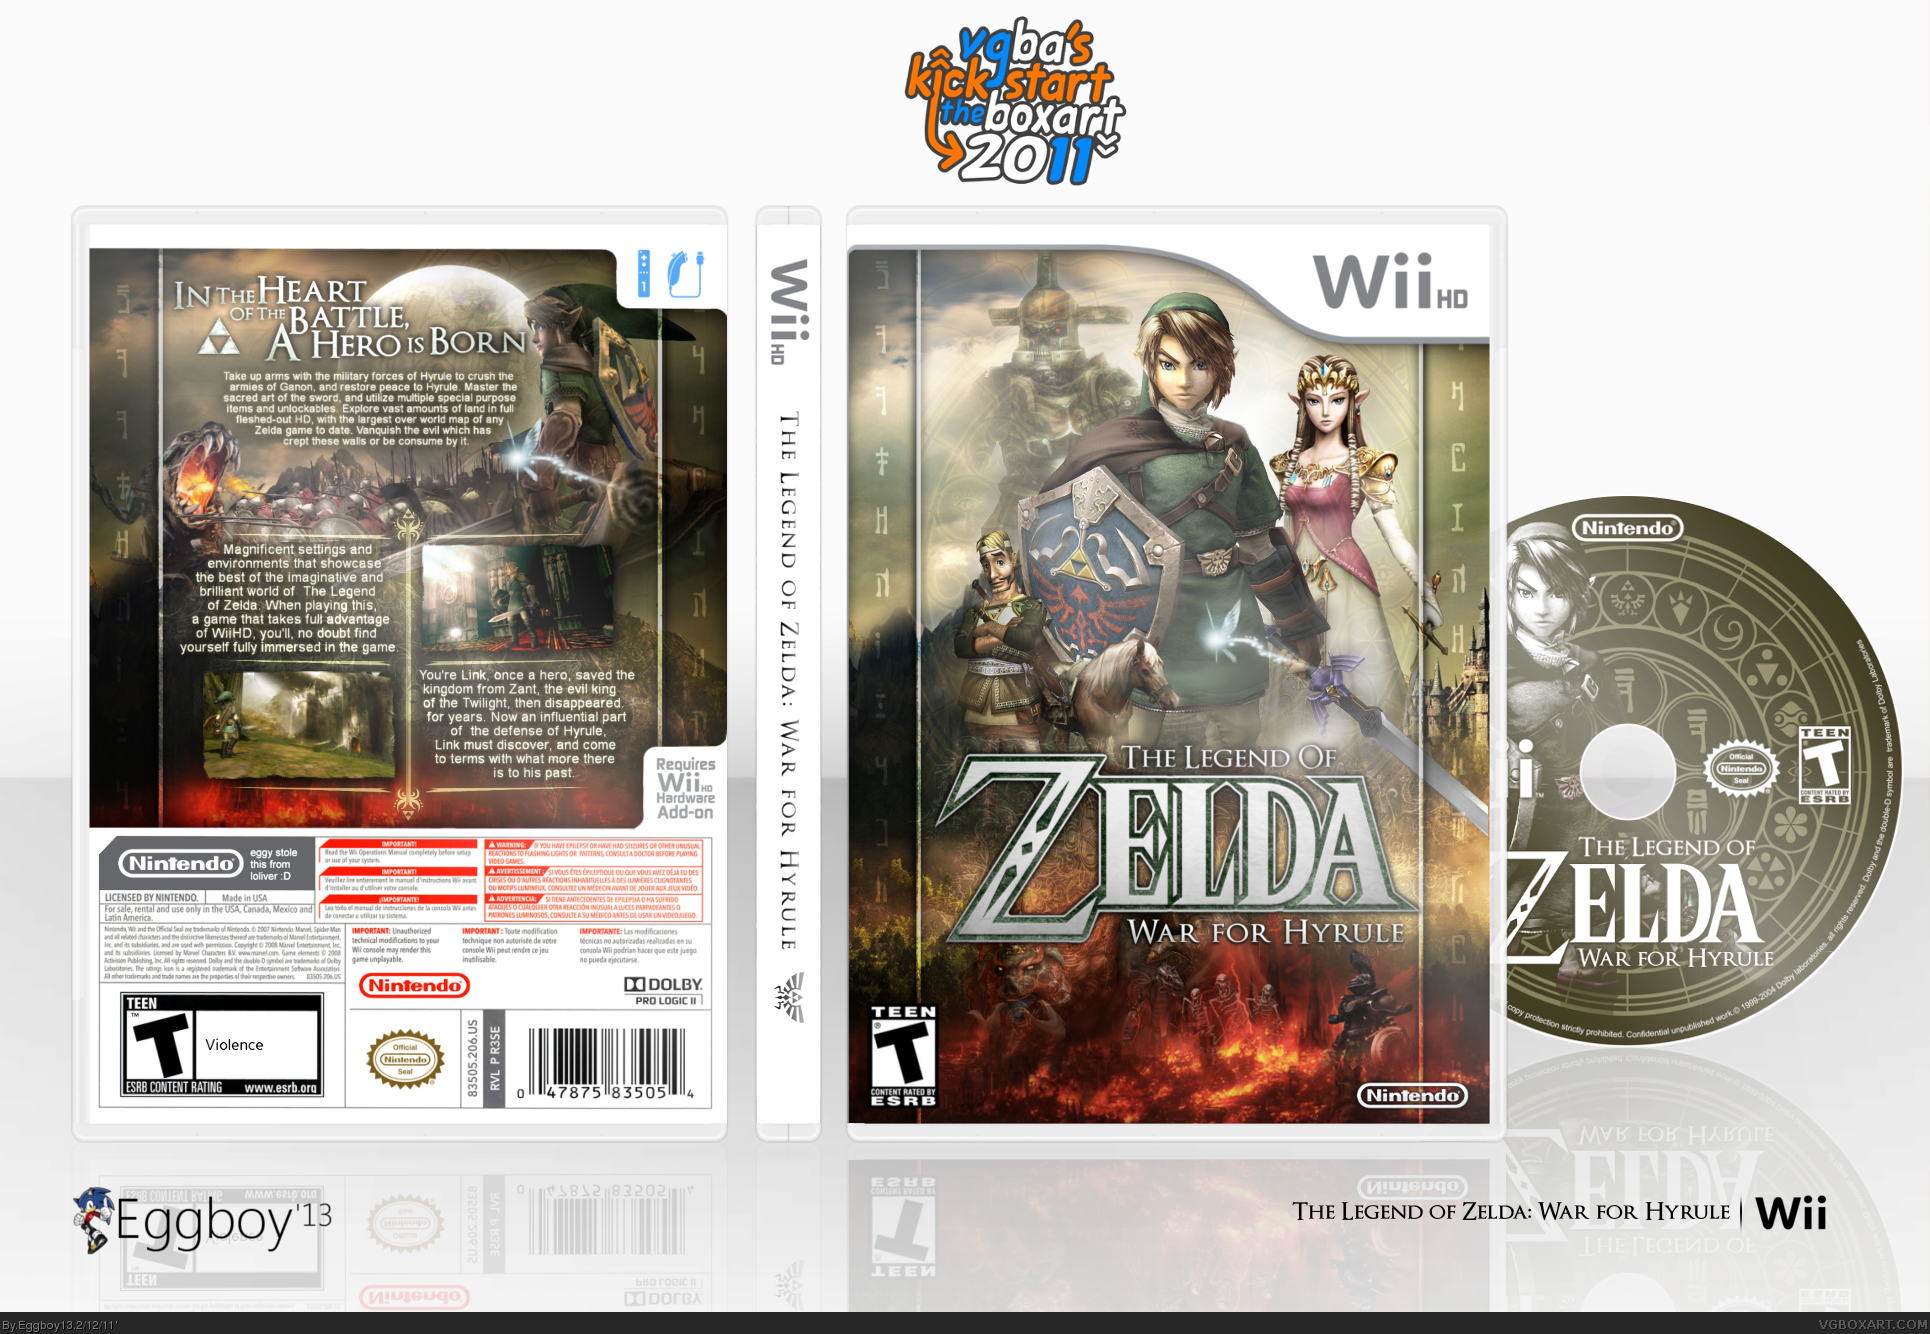 The Legend of Zelda: War for Hyrule box cover